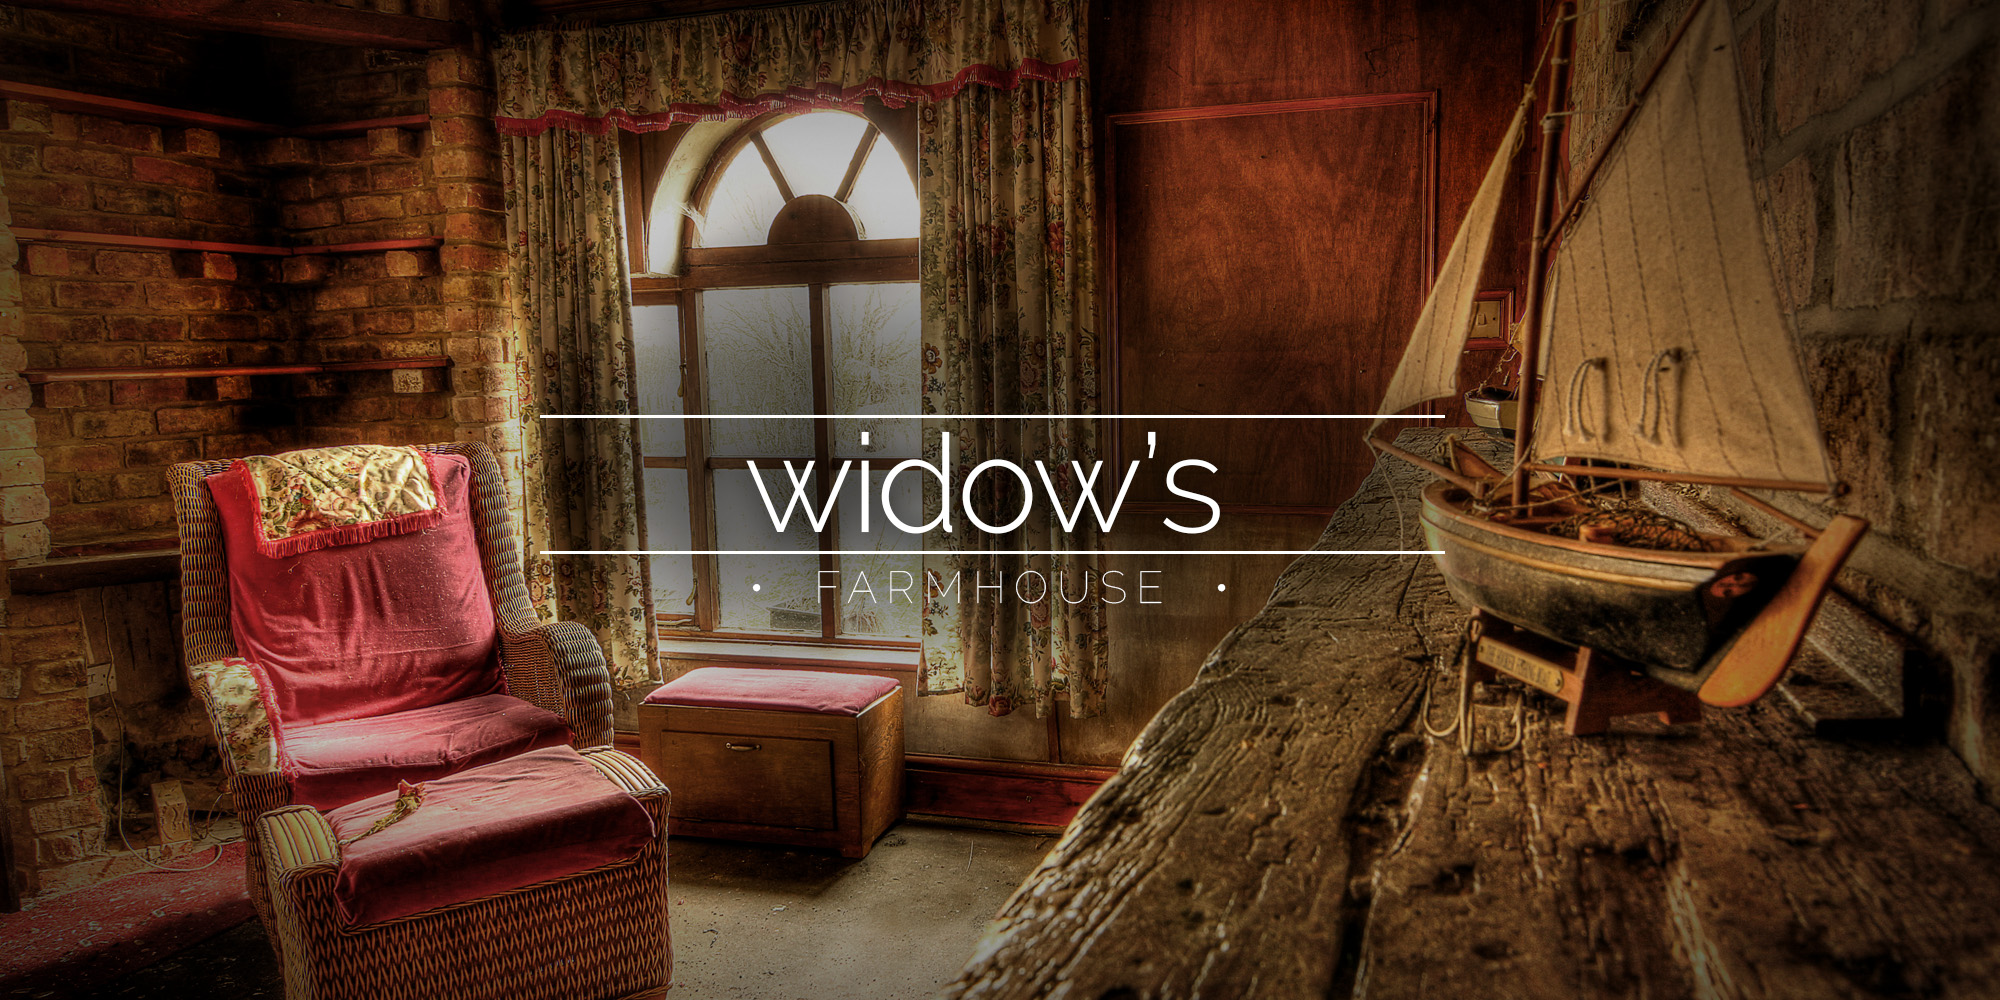 Widow's Farmhouse, Lincolnshire